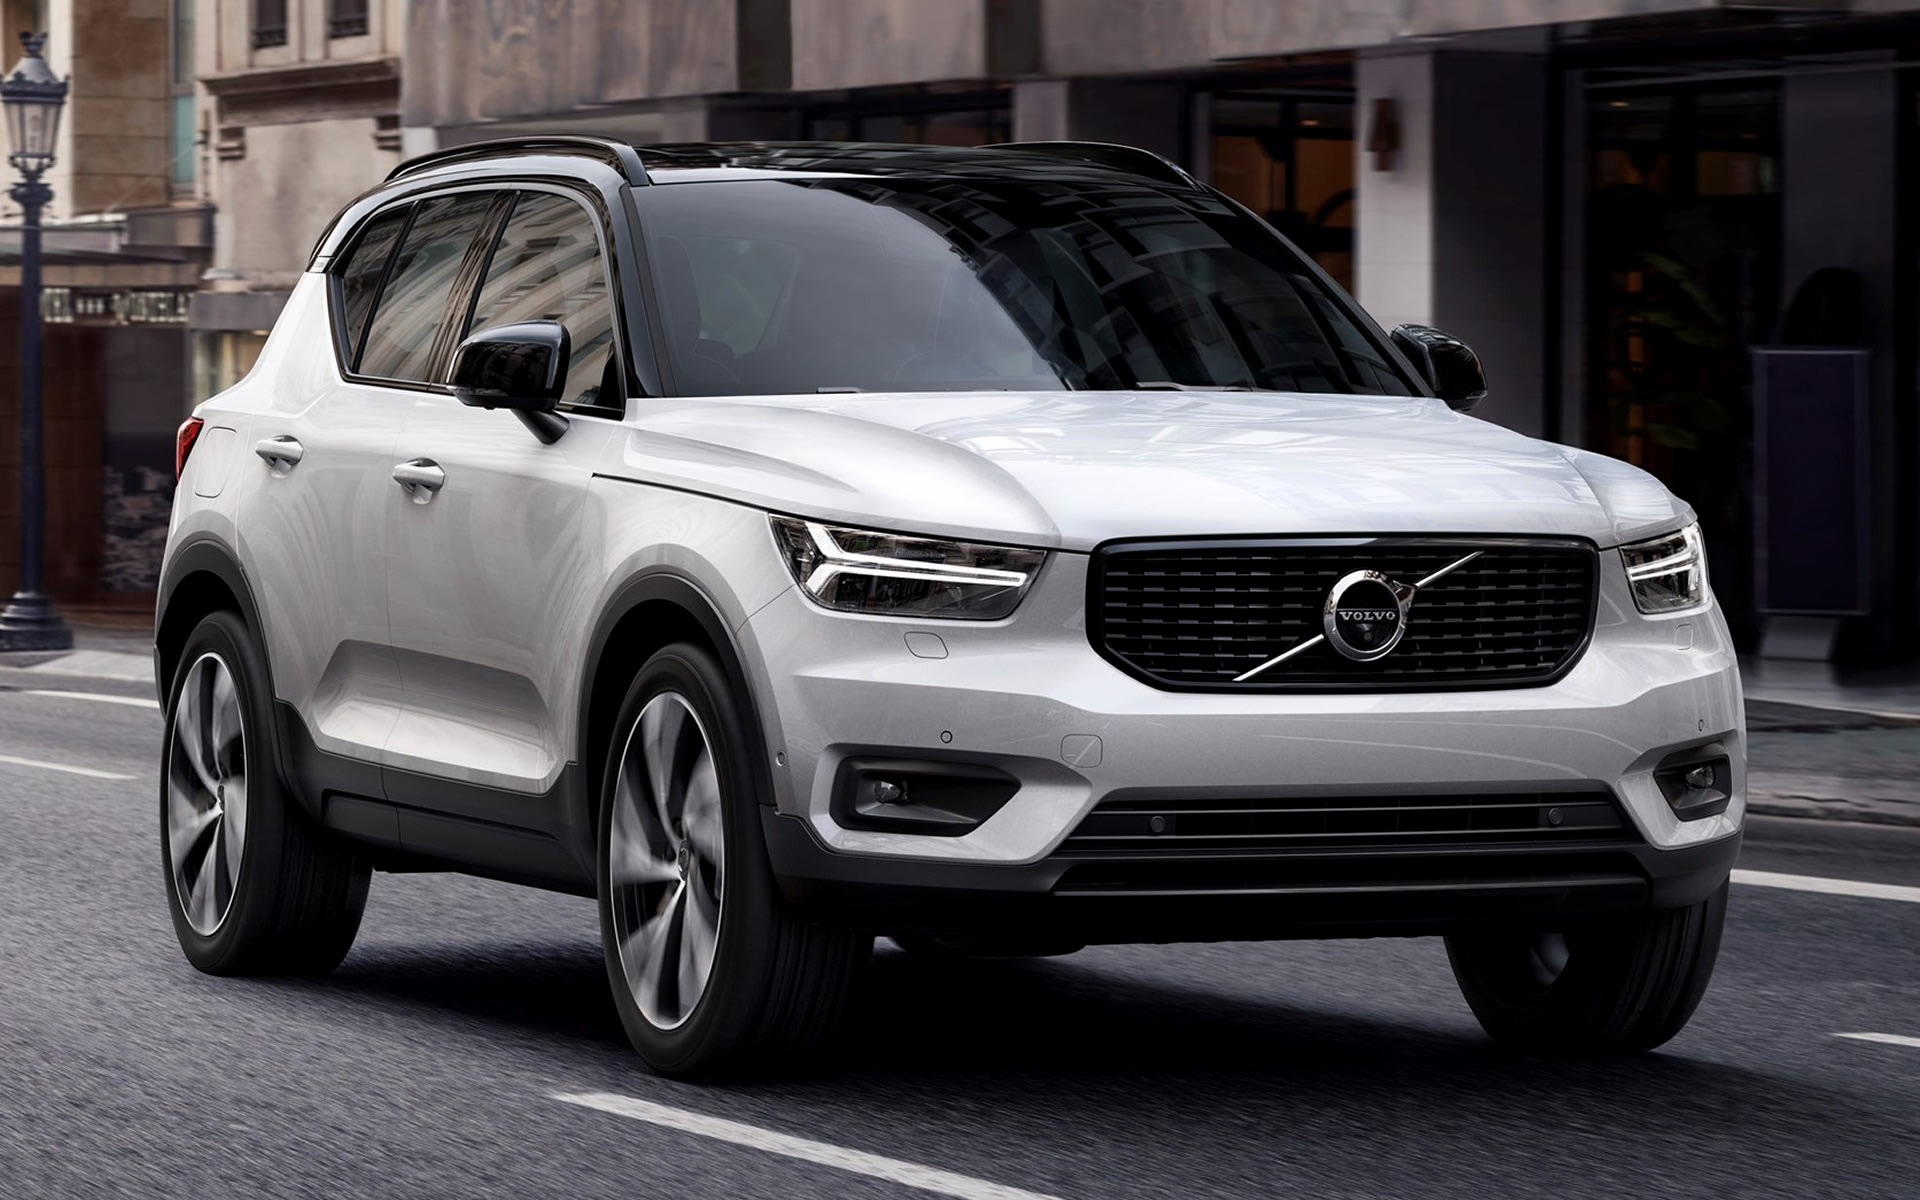 Ford Truck Hd Wallpaper Volvo Xc40 R Design 2017 Wallpapers And Hd Images Car